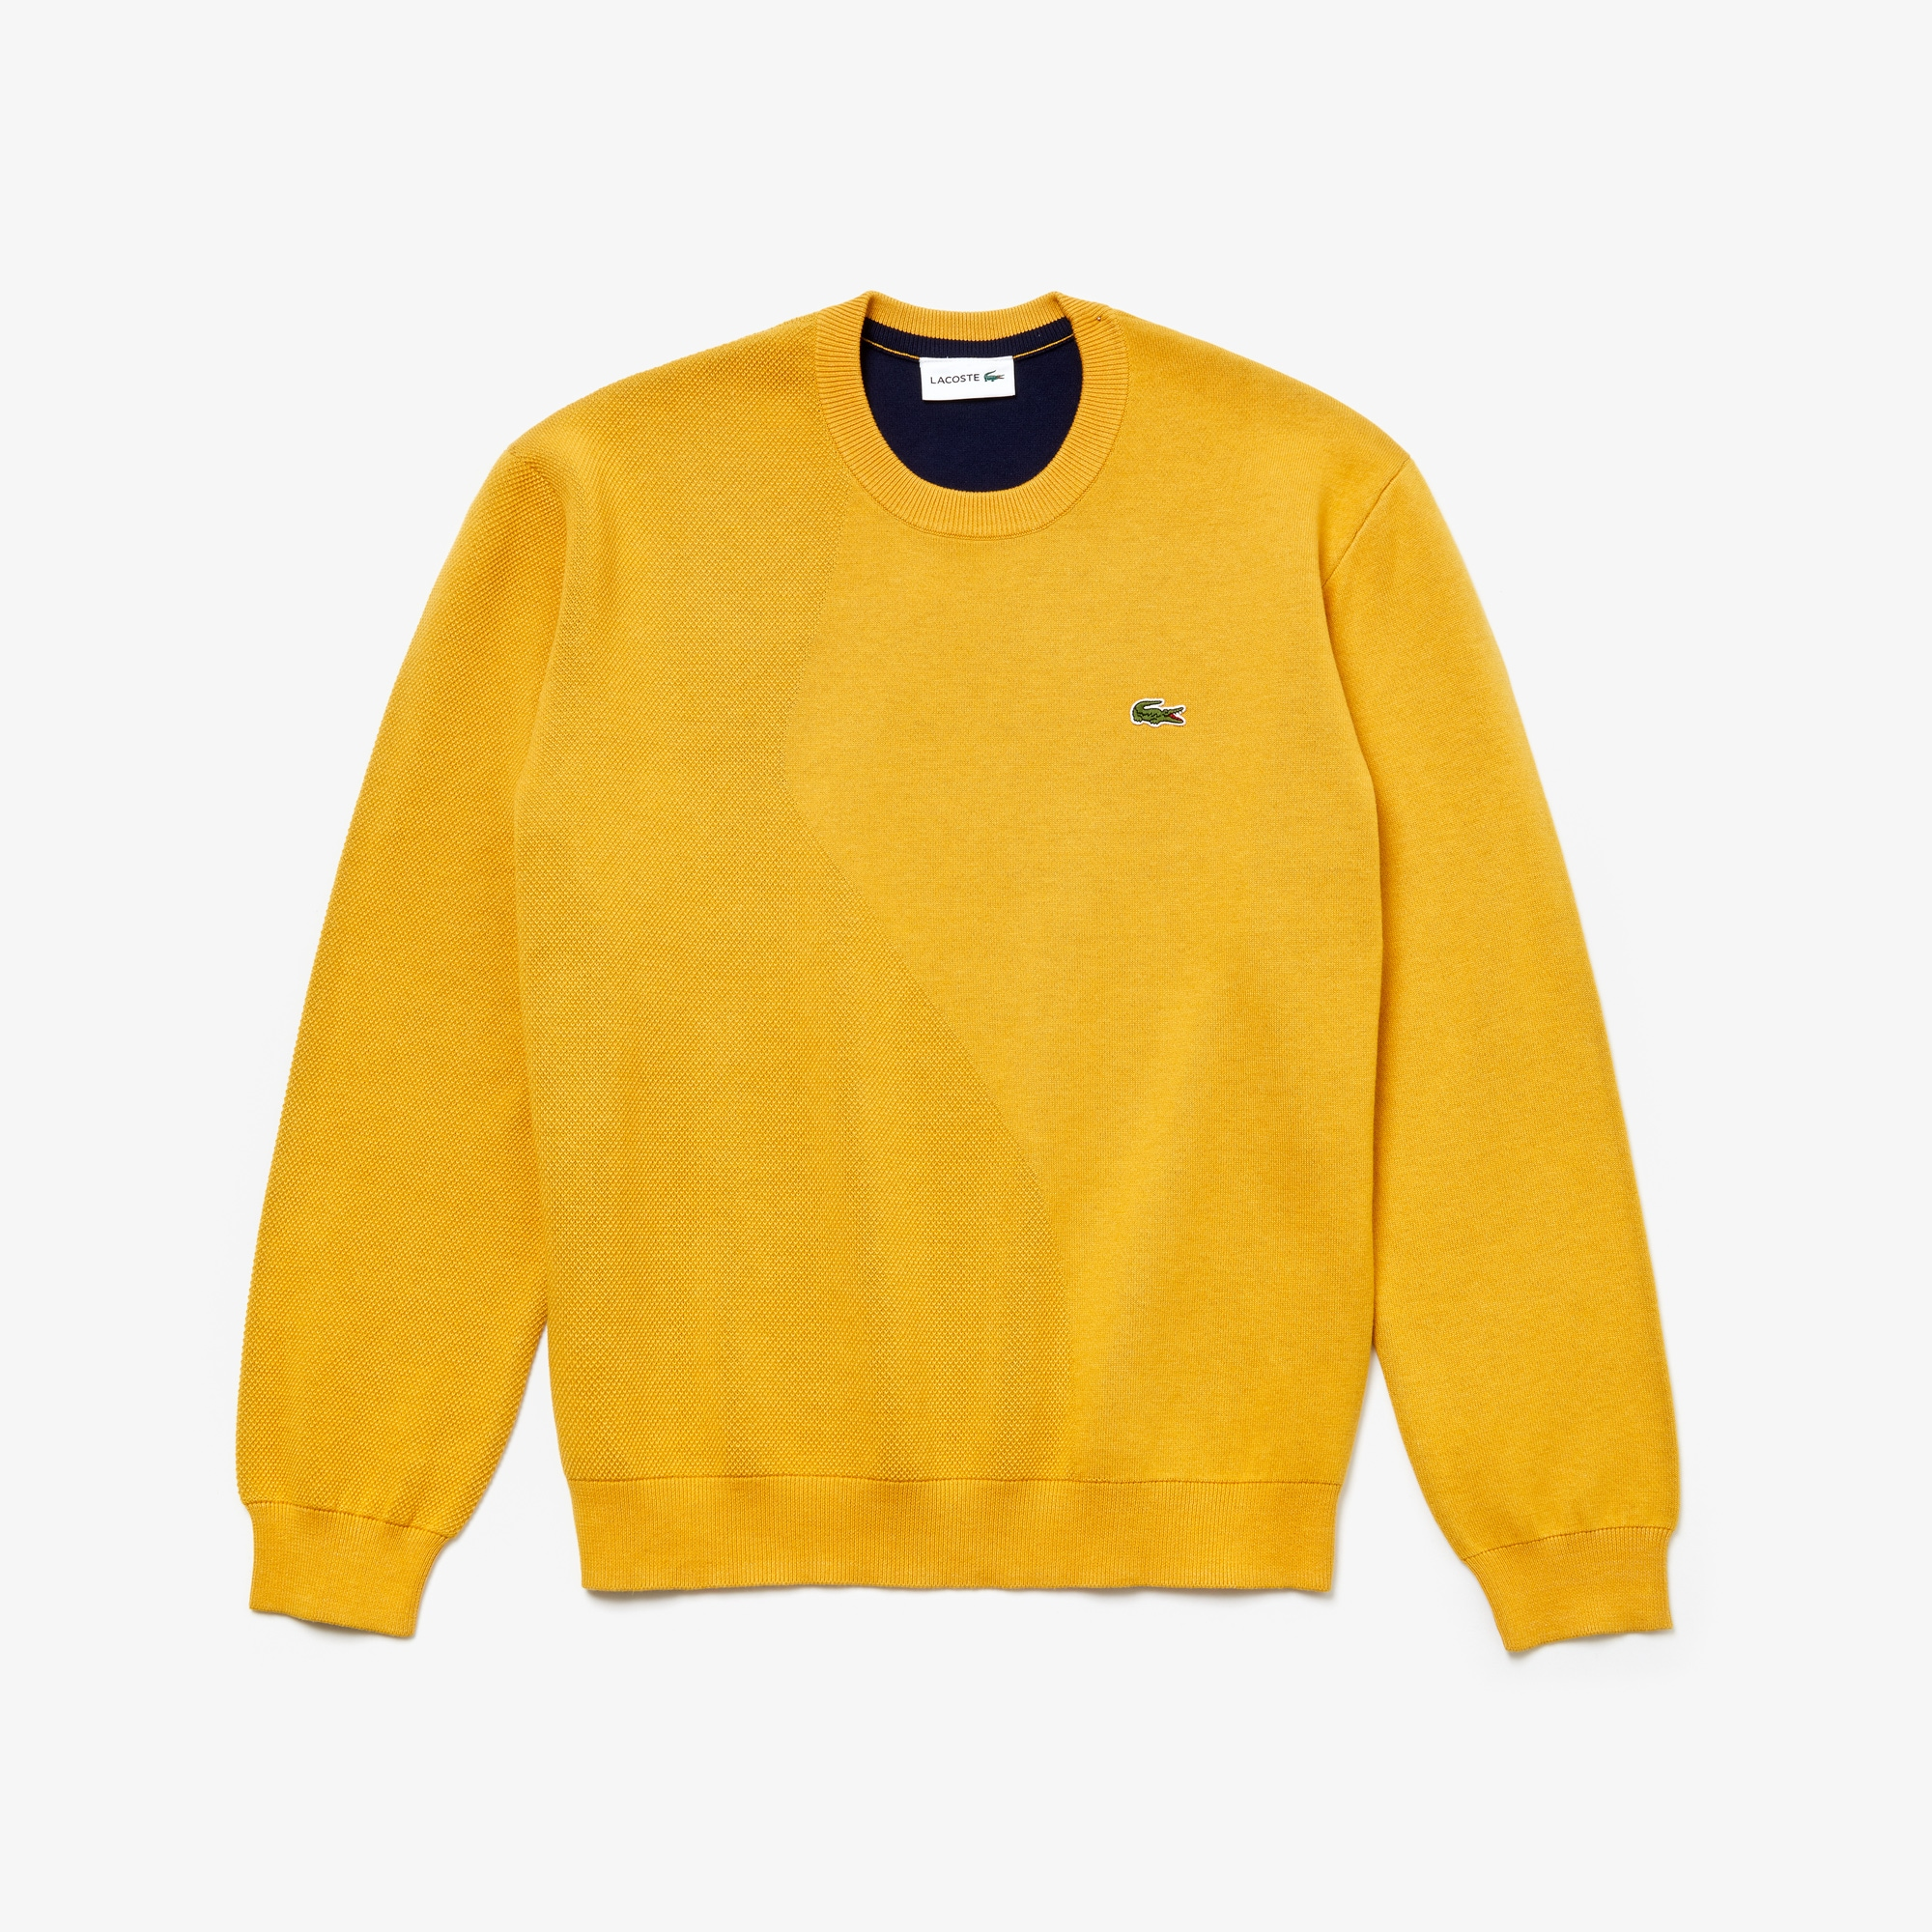 LACOSTE Cottons Men's Crewneck Textured Thermoregulating Sweater